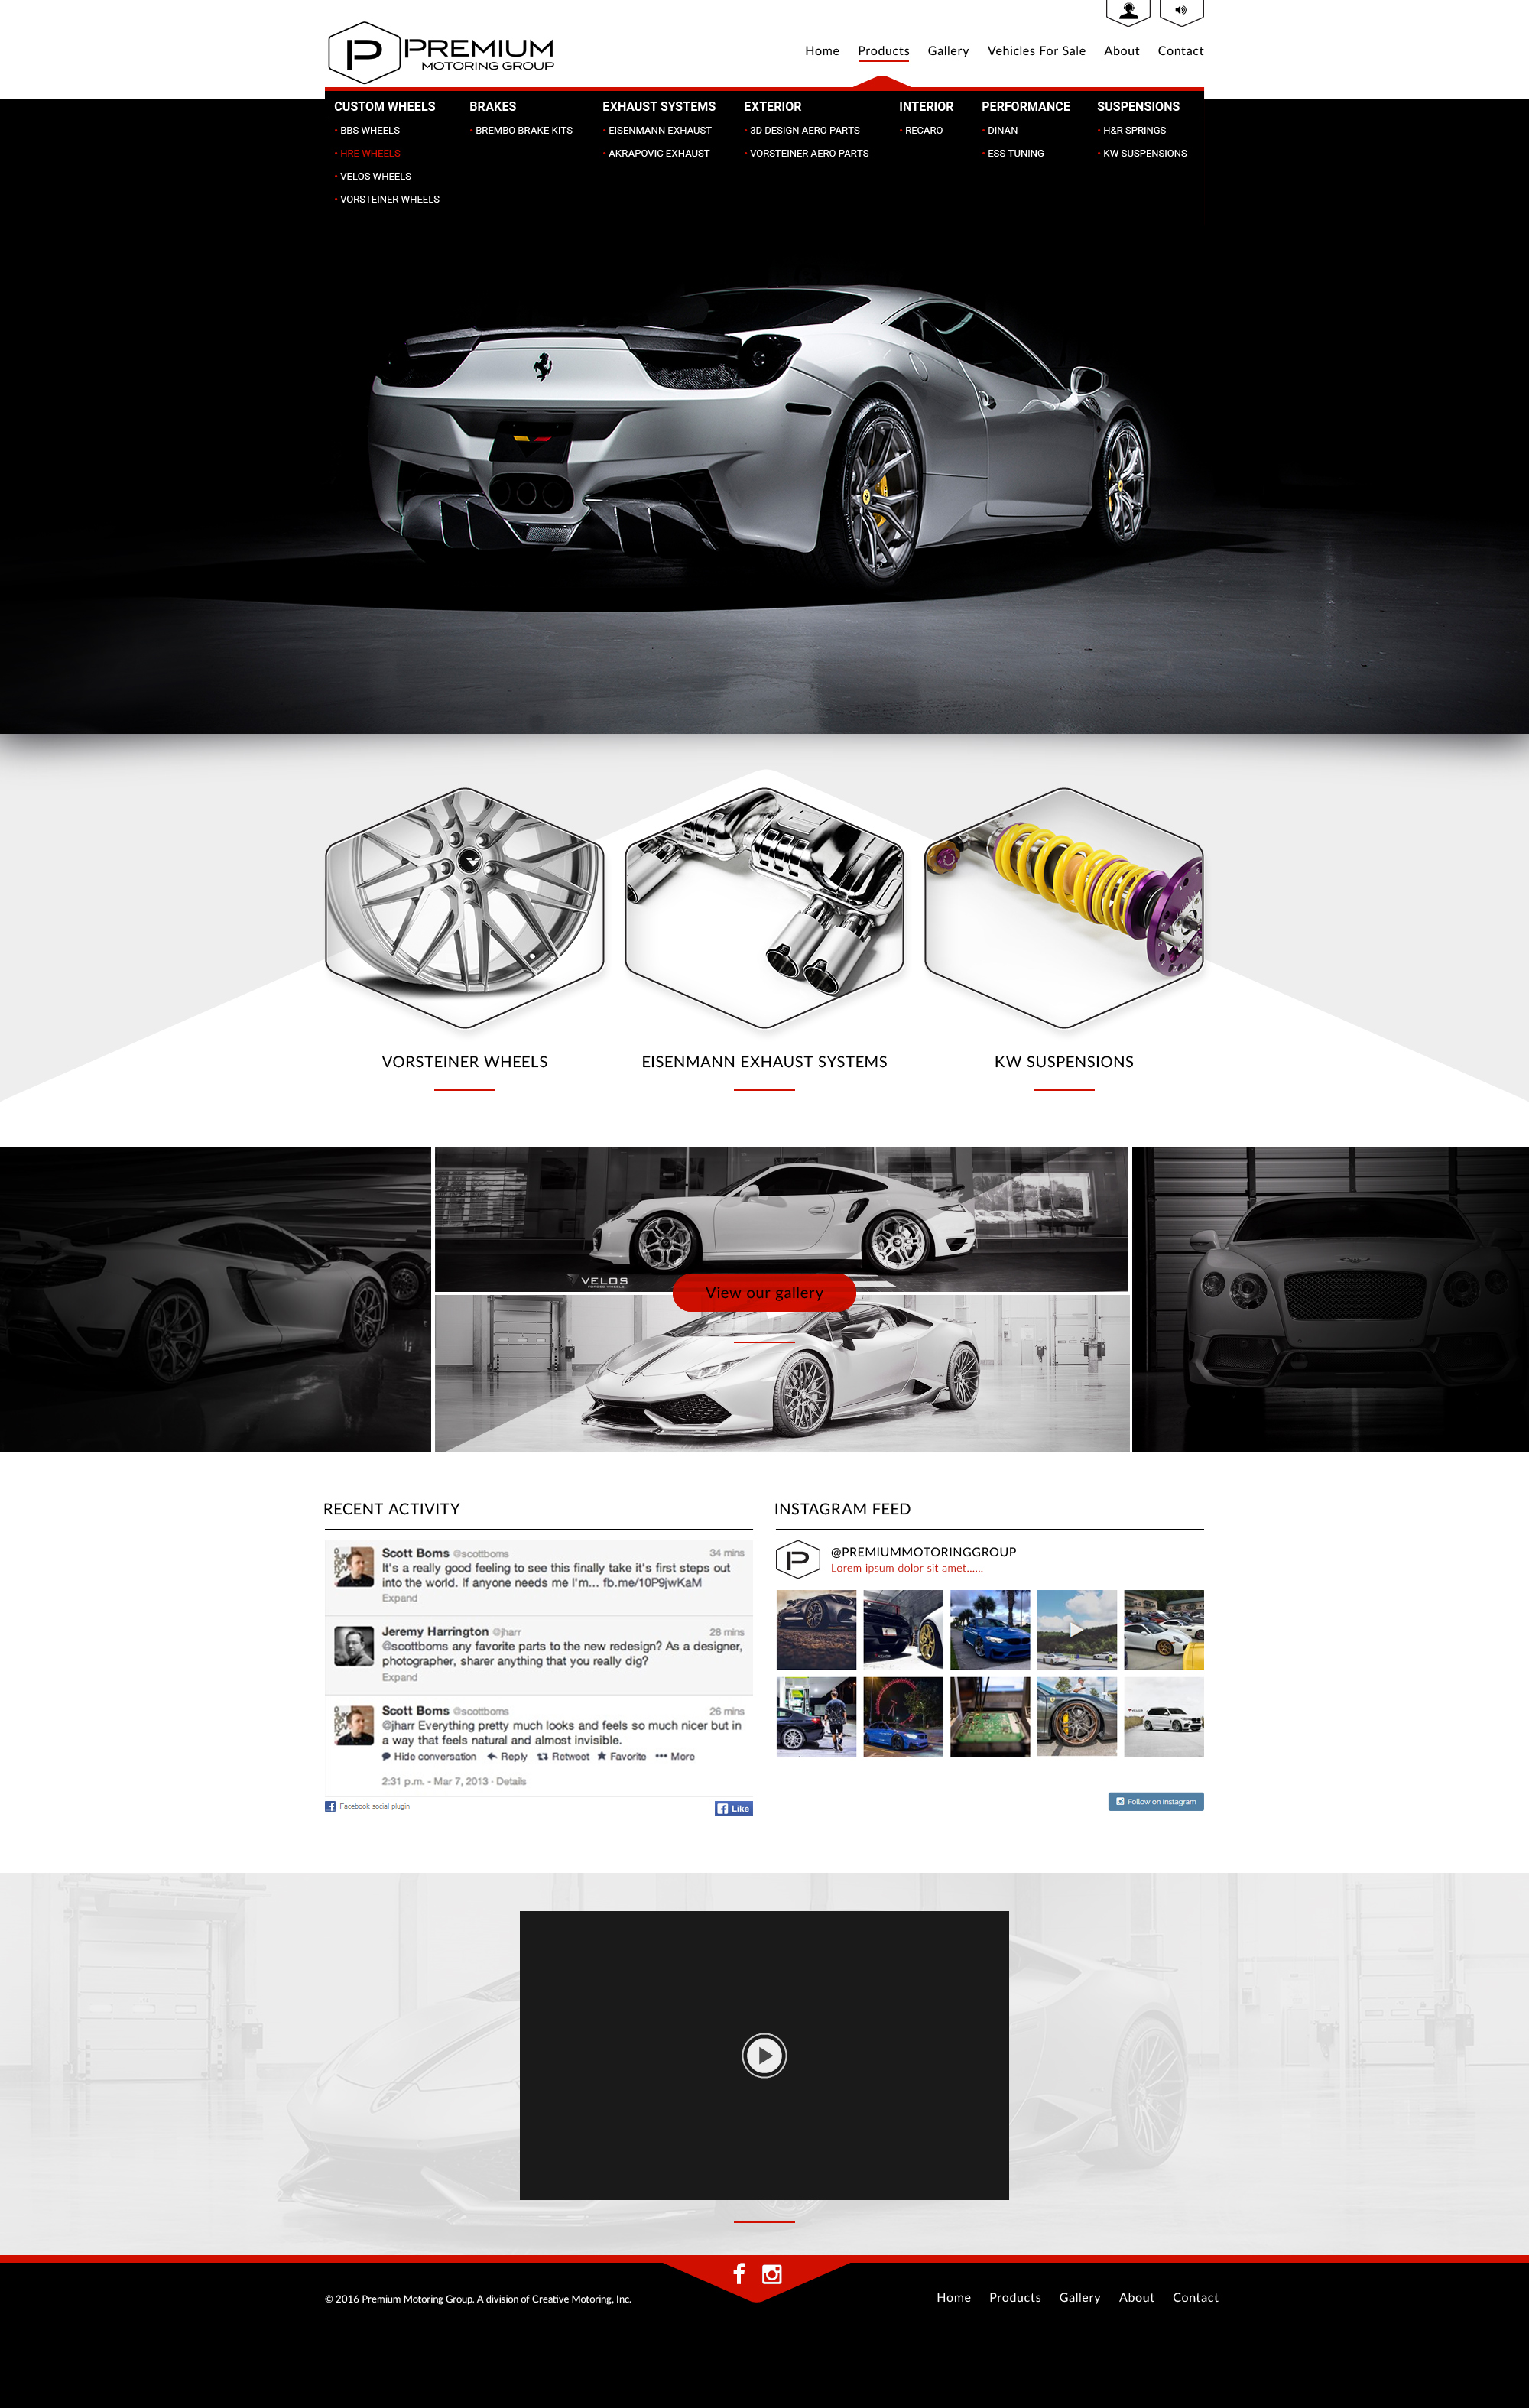 Premium Motoring wordpress home v6